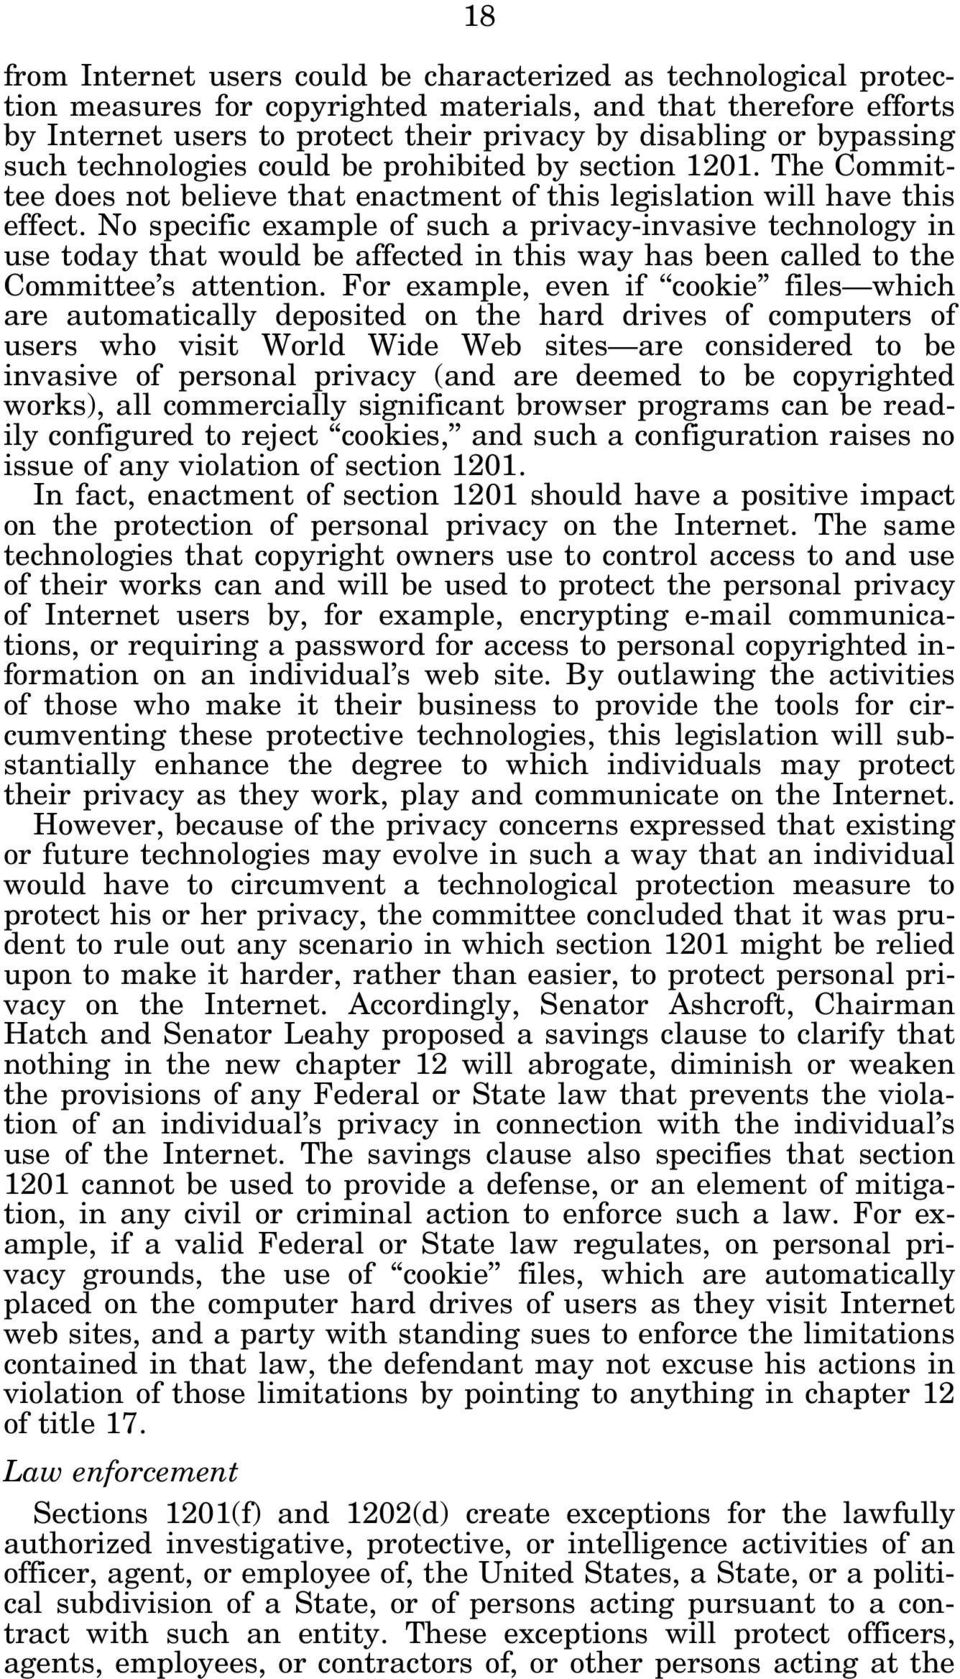 No specific example of such a privacy-invasive technology in use today that would be affected in this way has been called to the Committee s attention.